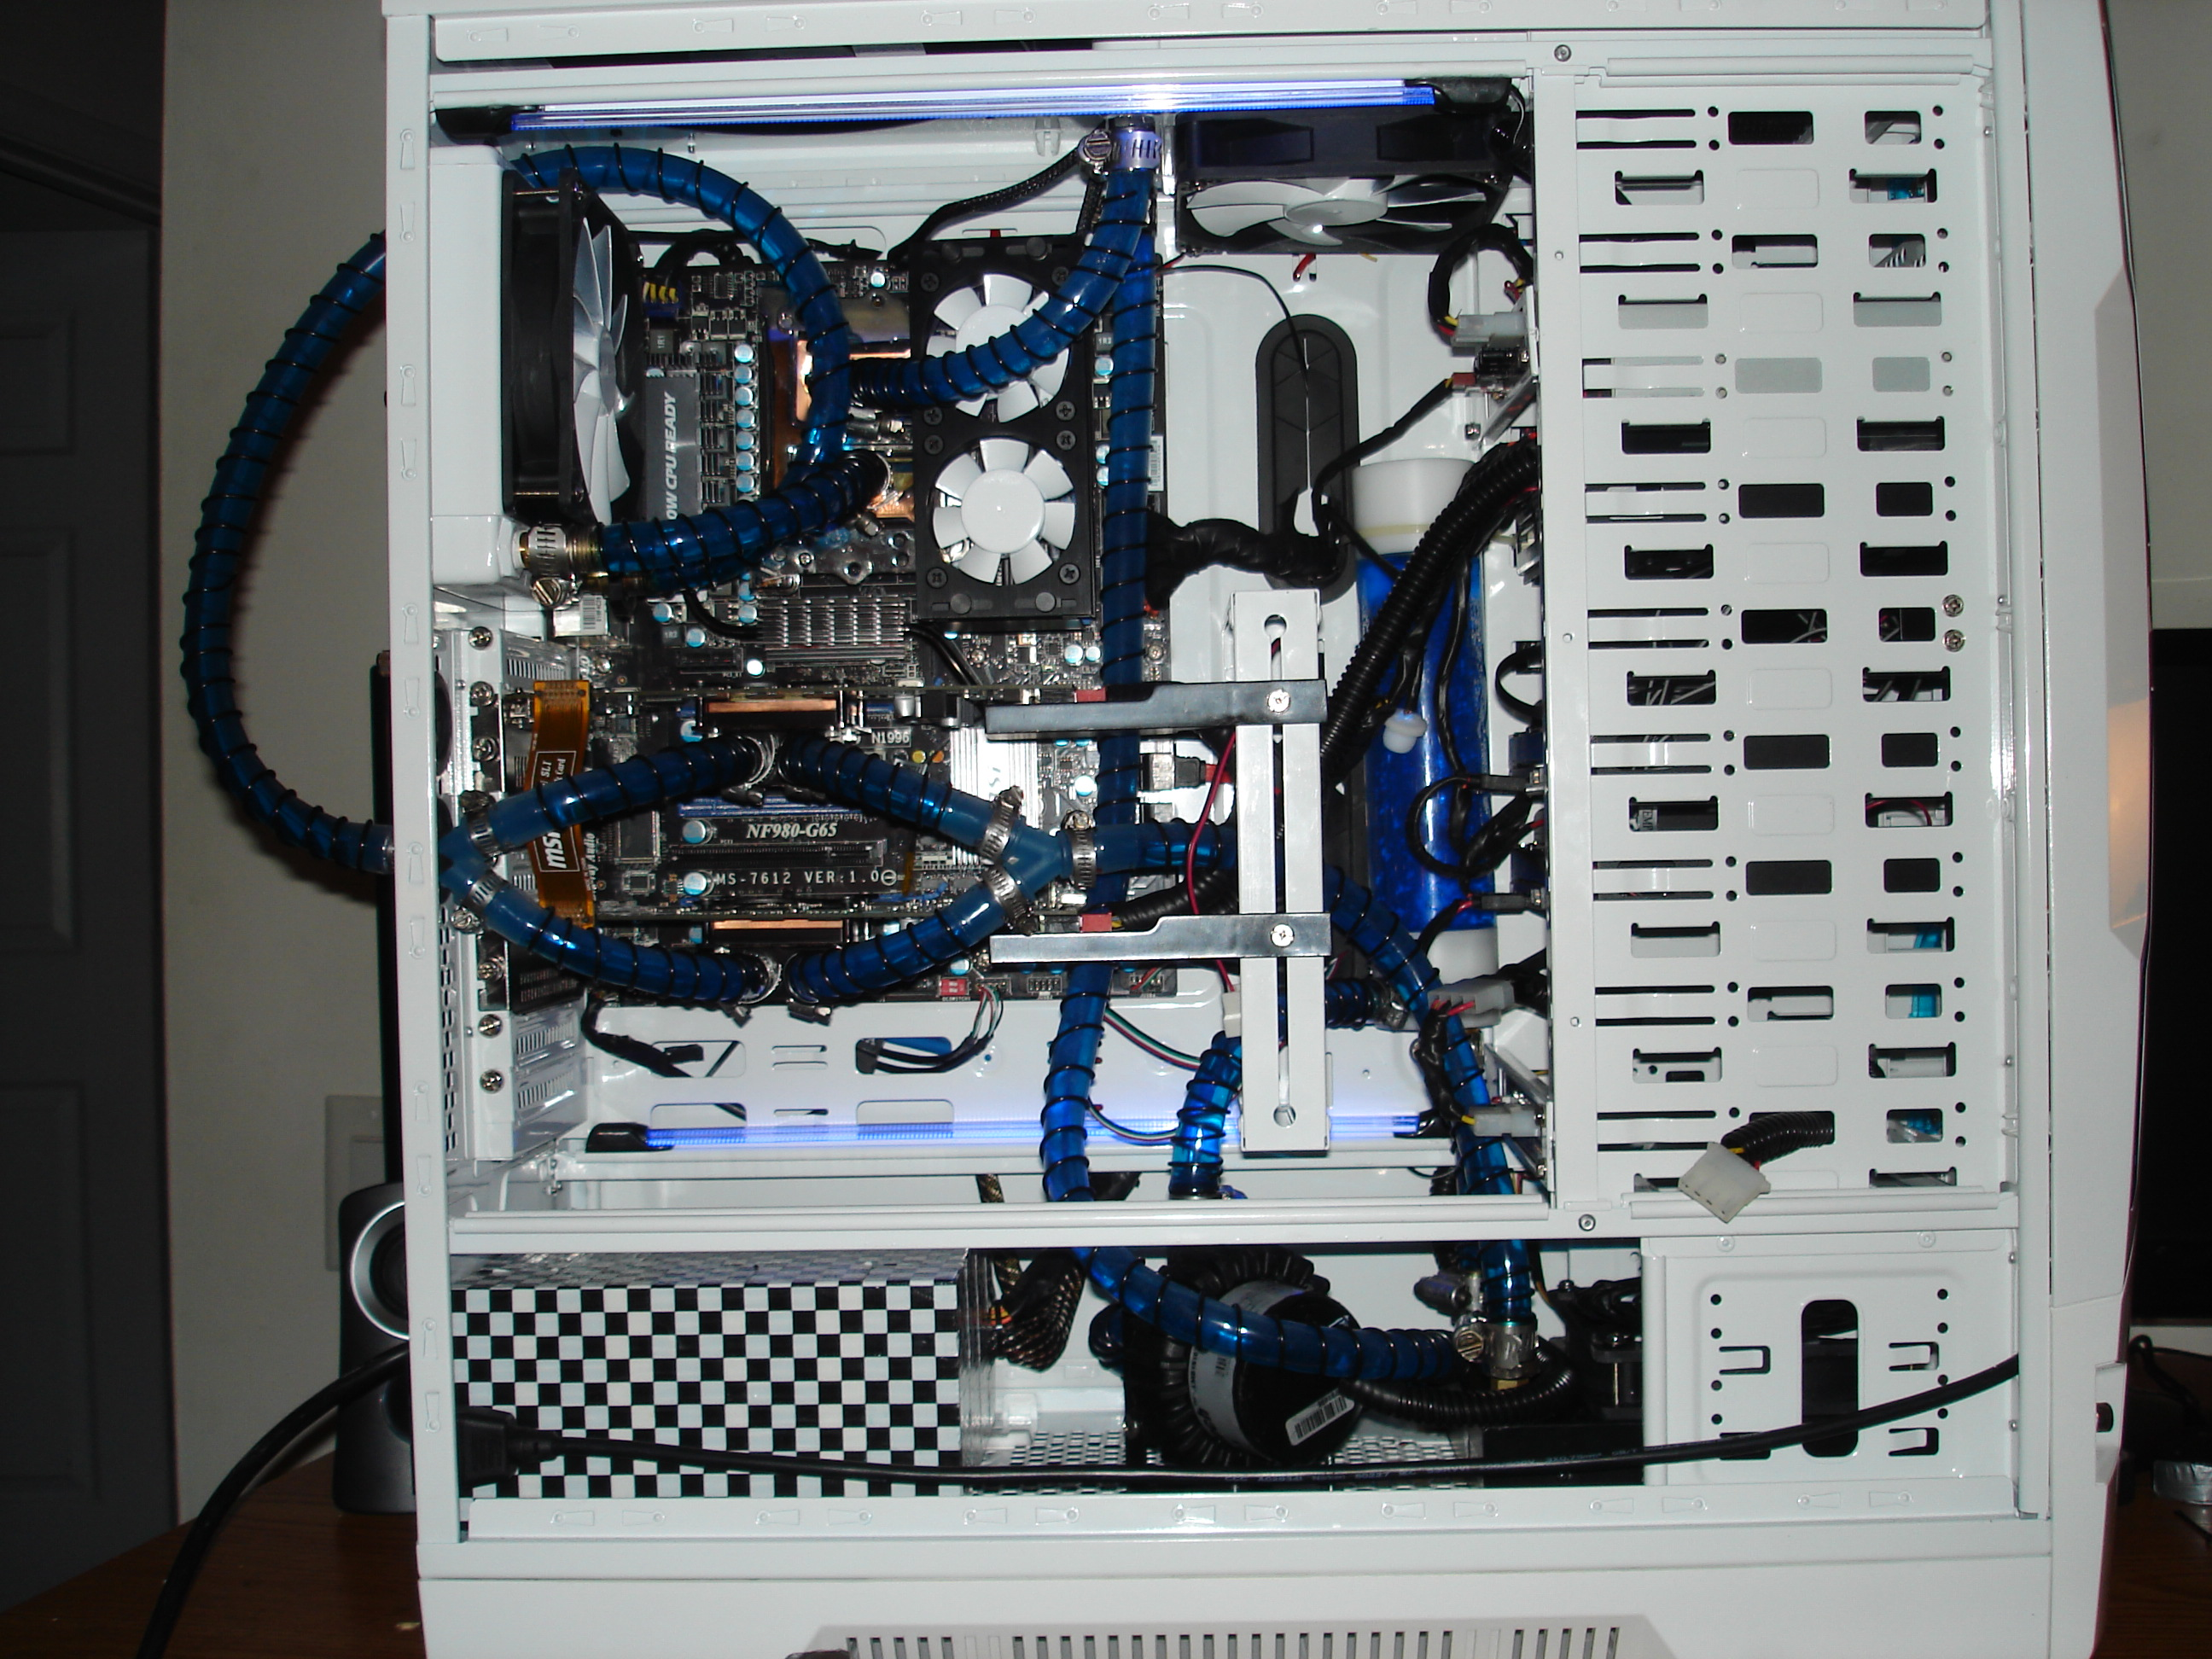 rebuilt water cooling system and a change to the color blue from red